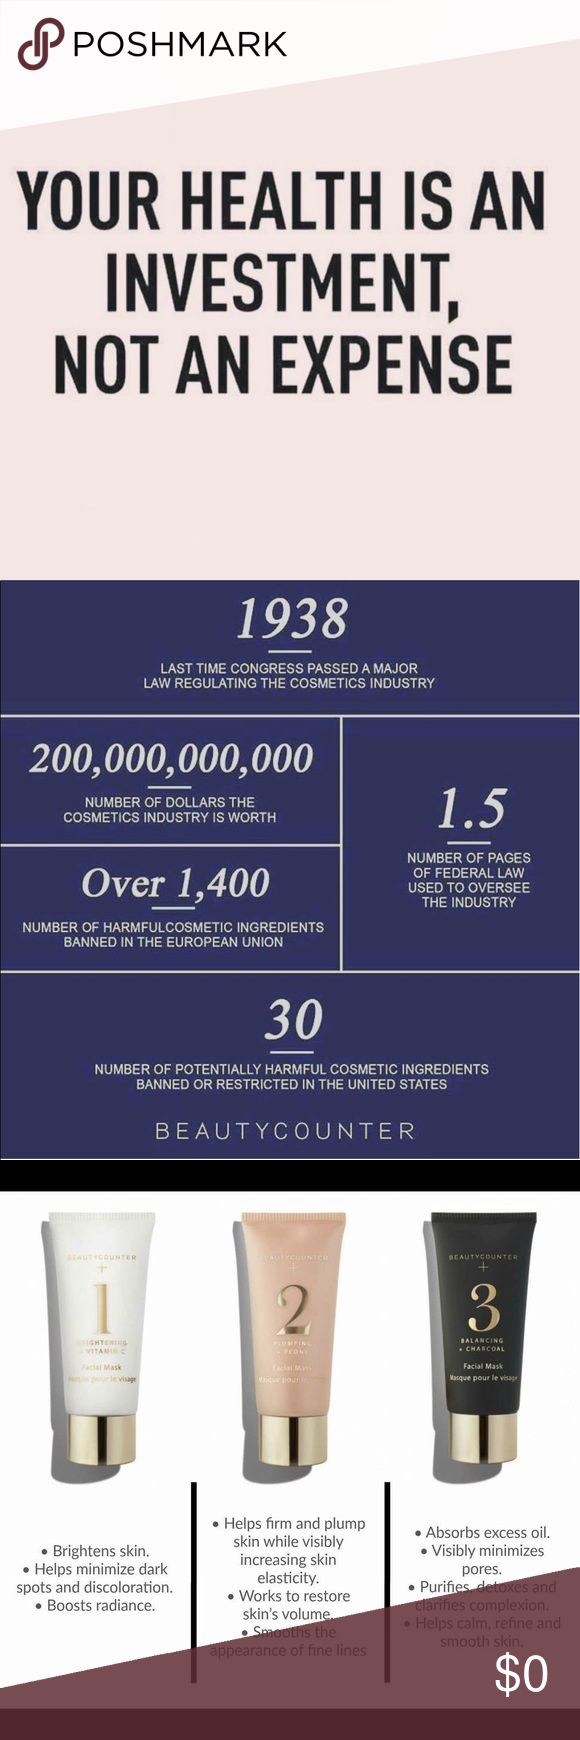 FREE Cosmetic Samples used by Victoria's Secret!! I am a consultant for Beautycounter- a cosmetic line that provides safer products by banning over 1500 different chemicals in their ingredient list (US has only banned 30, UK has banned around 1400). While safety is what separates BeautyCounter from other brands, they do not compromise luxury- they've hired Chanel consultants along the way to help develop their products. Lots of celebrities have joined the movement for safer beauty- see my…